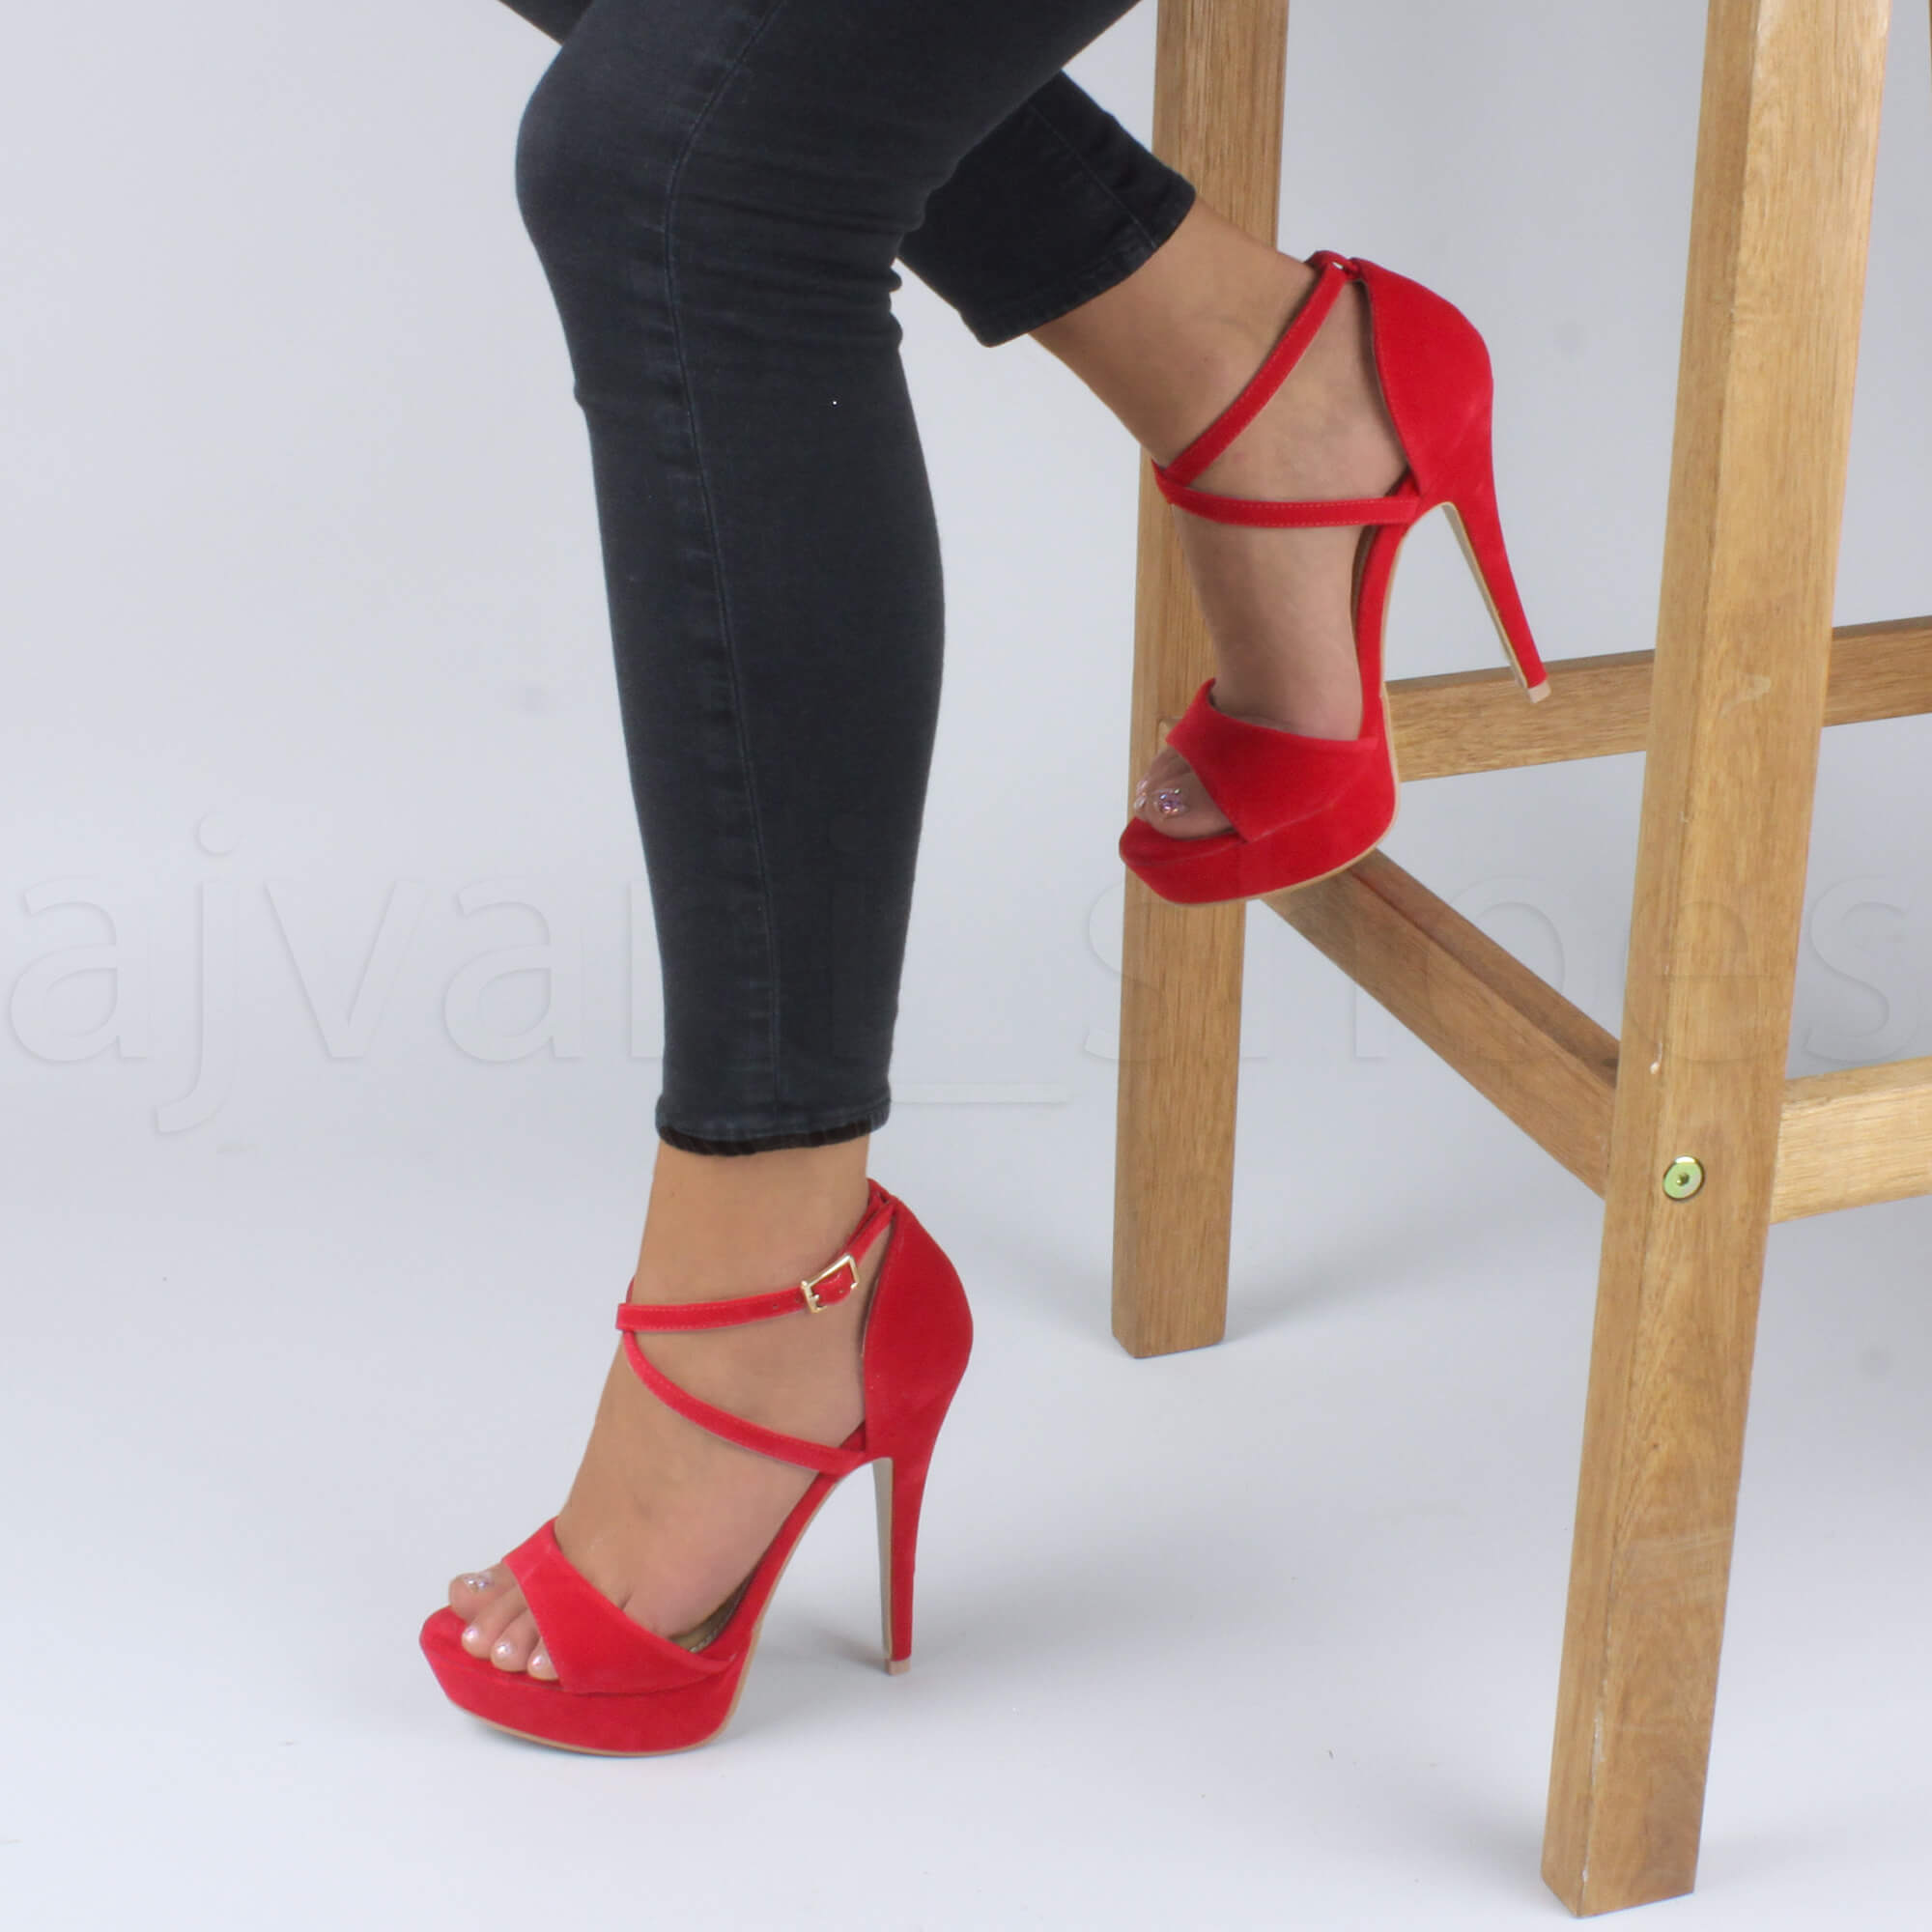 WOMENS-LADIES-PLATFORM-HIGH-HEEL-PEEP-TOE-CROSS-OVER-STRAPPY-SANDALS-SHOES-SIZE thumbnail 104